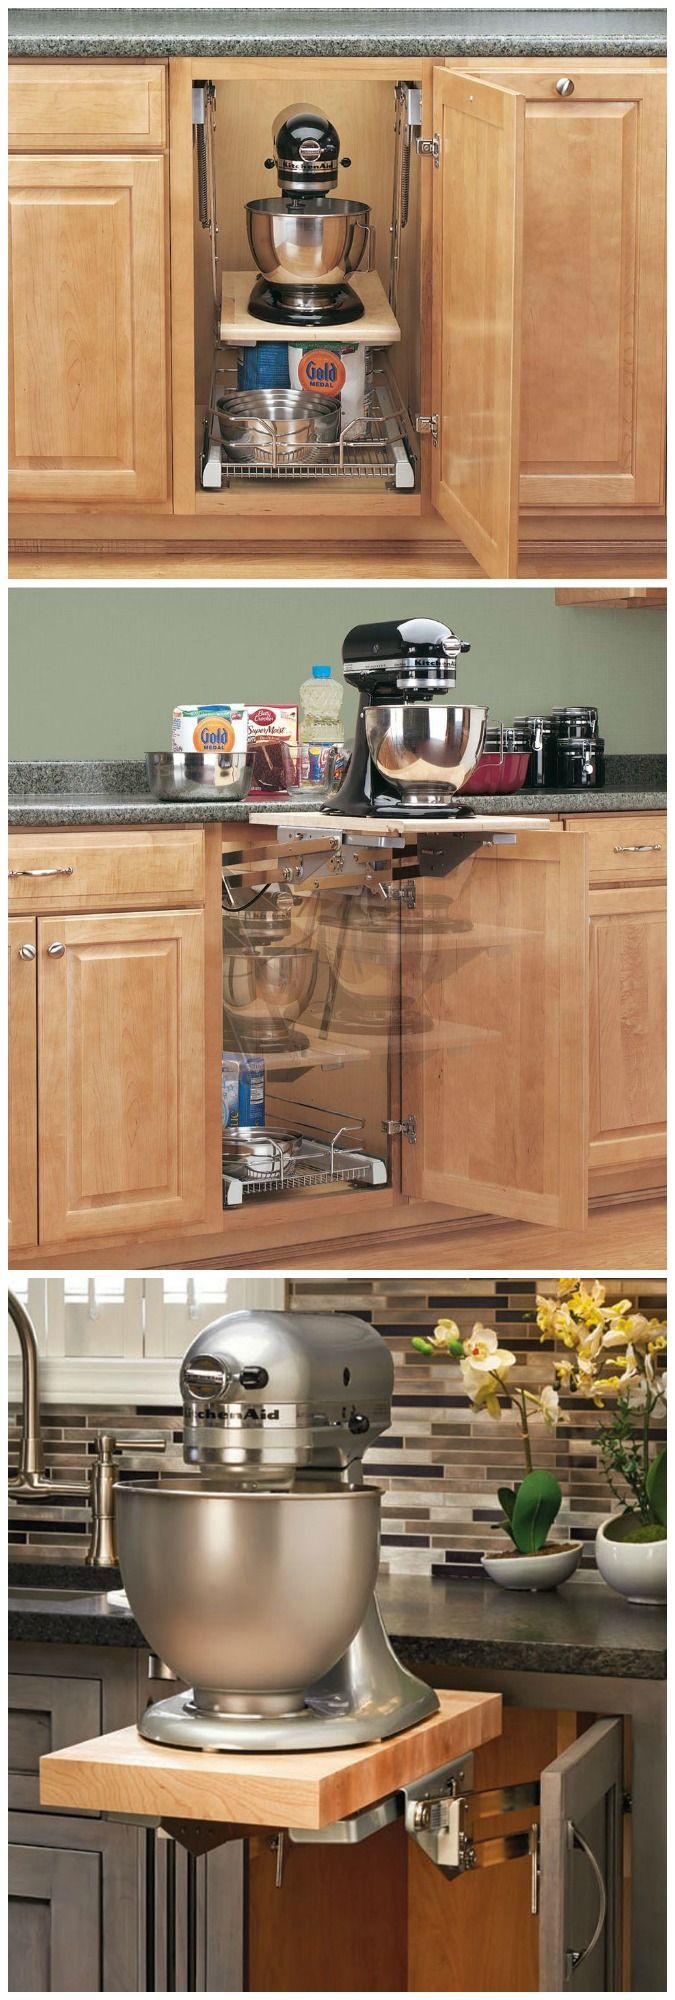 Top 5 Kitchen Appliance Brands 25 Best Ideas About Appliances On Pinterest Stoves Kitchen